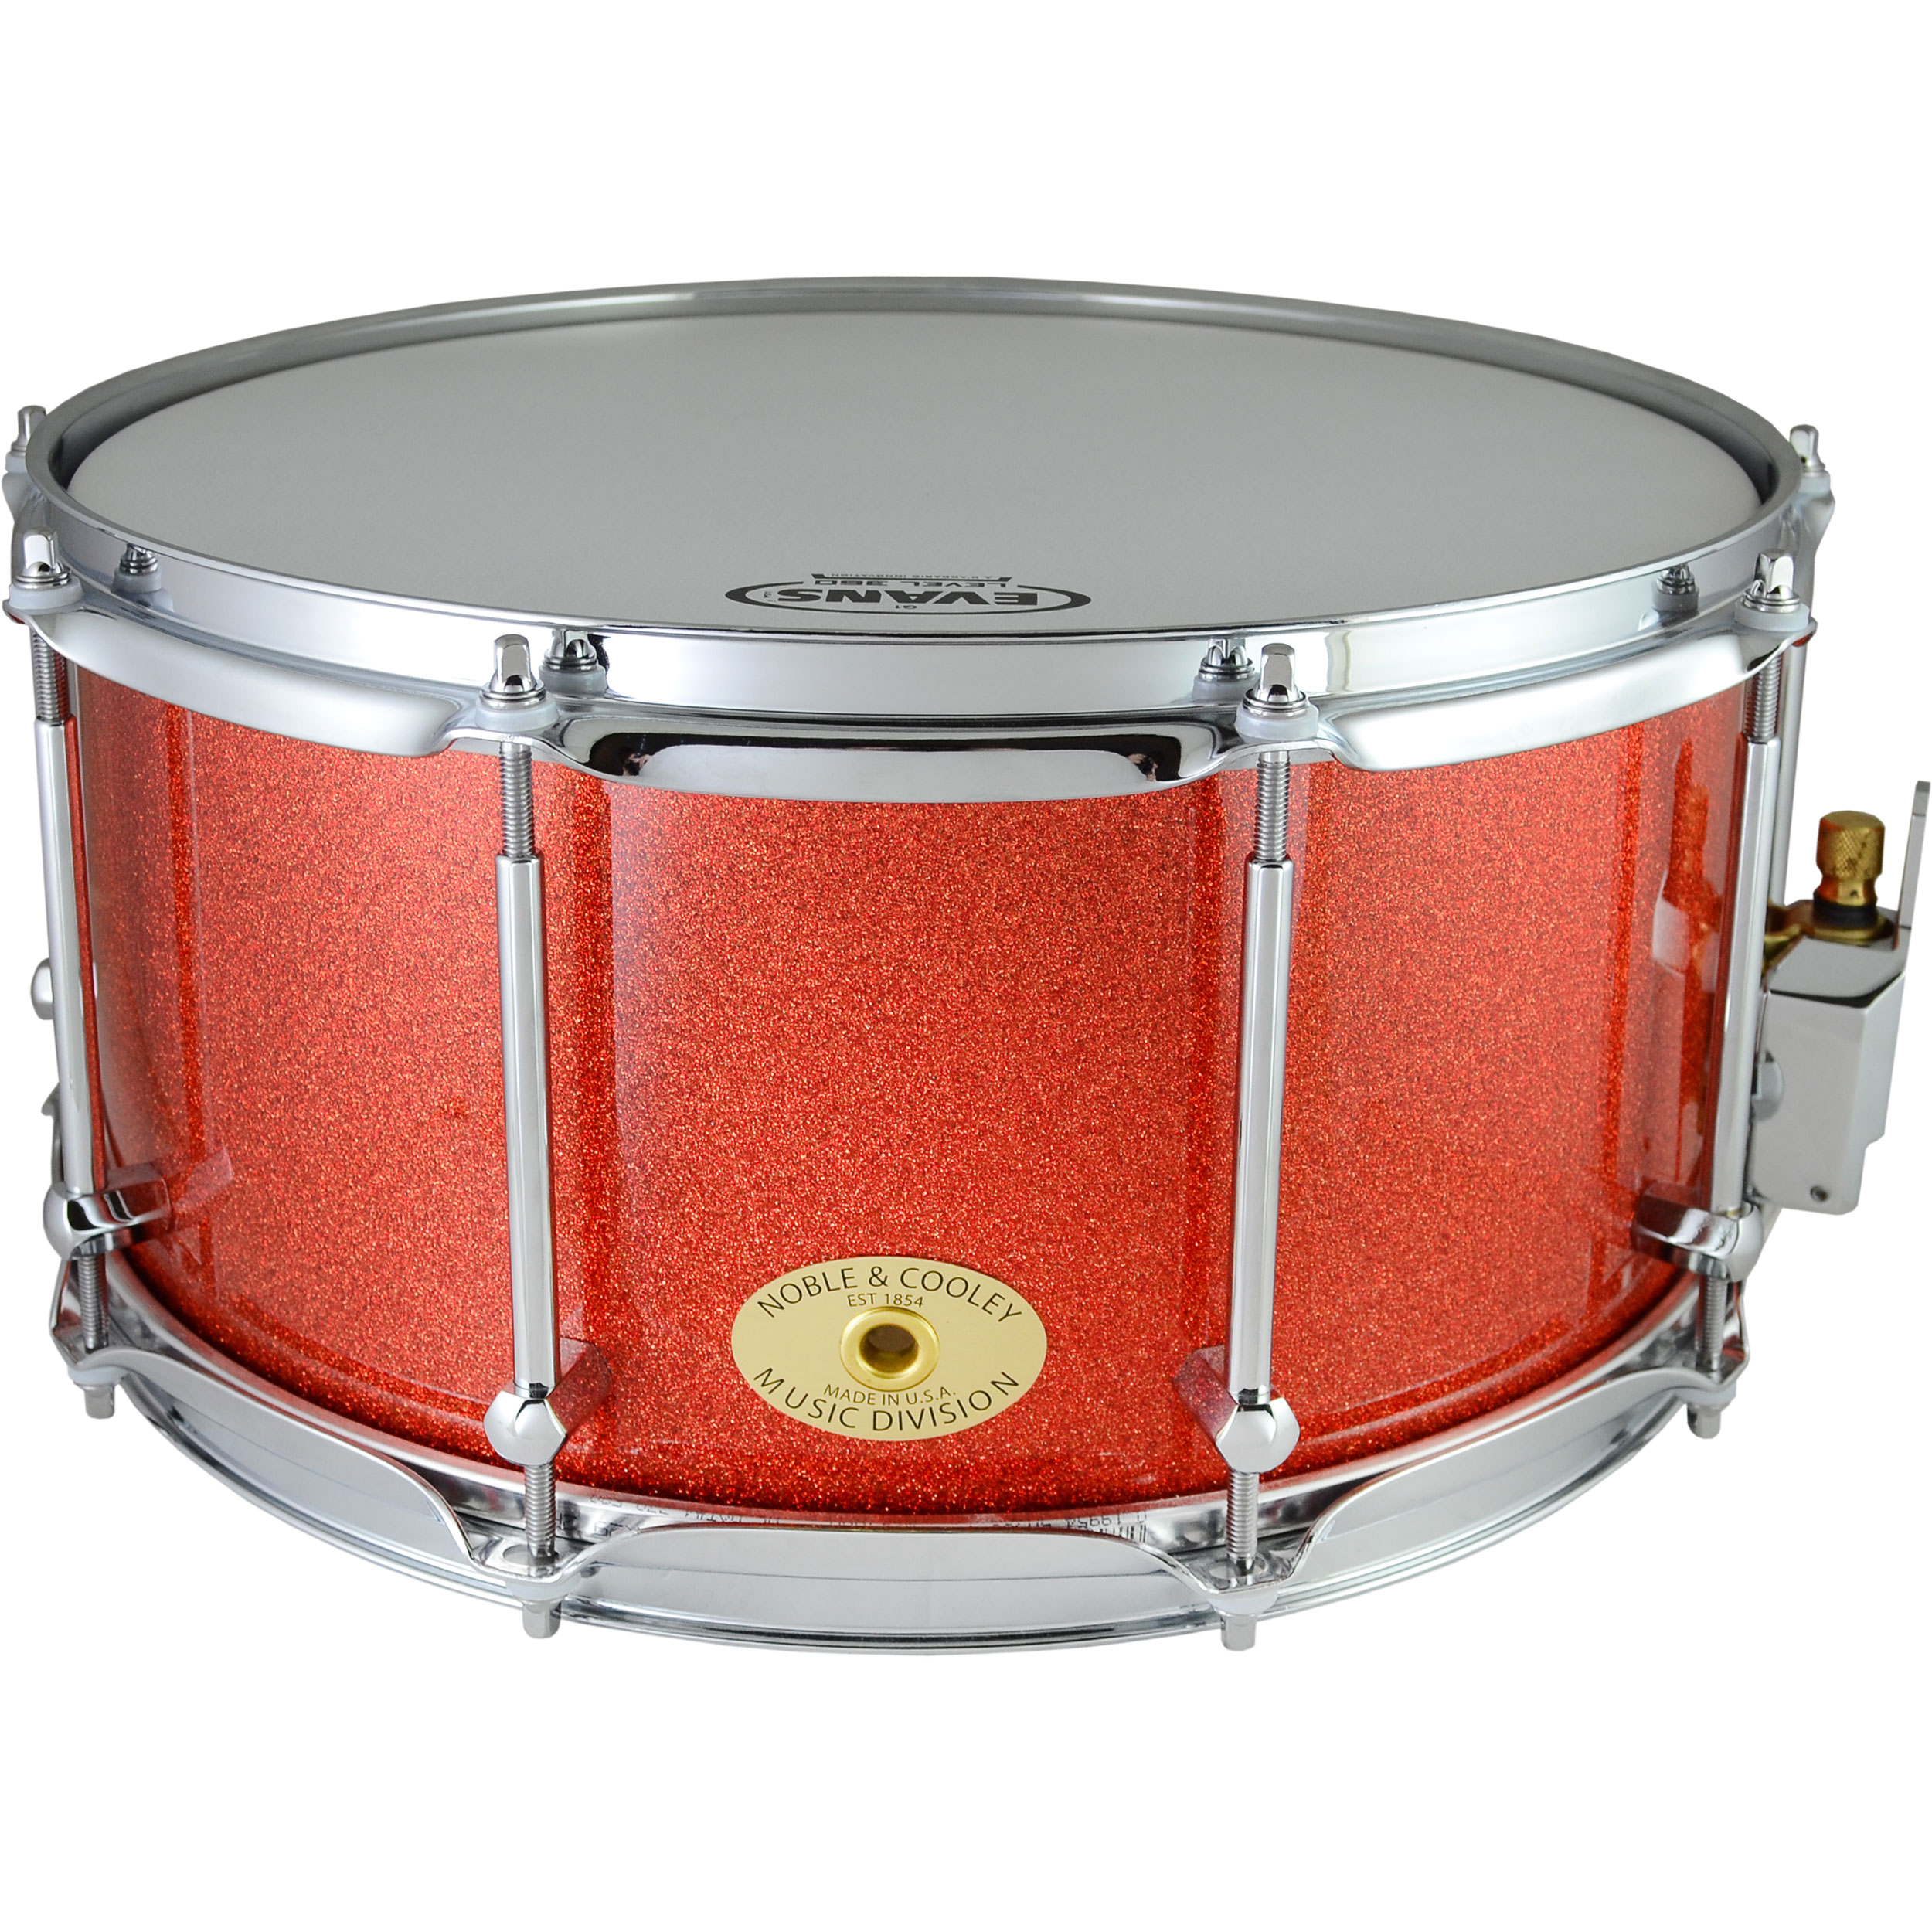 "Noble & Cooley 7"" x 14"" Classic Solid Shell Maple Snare Drum in Tangerine Sparkle"